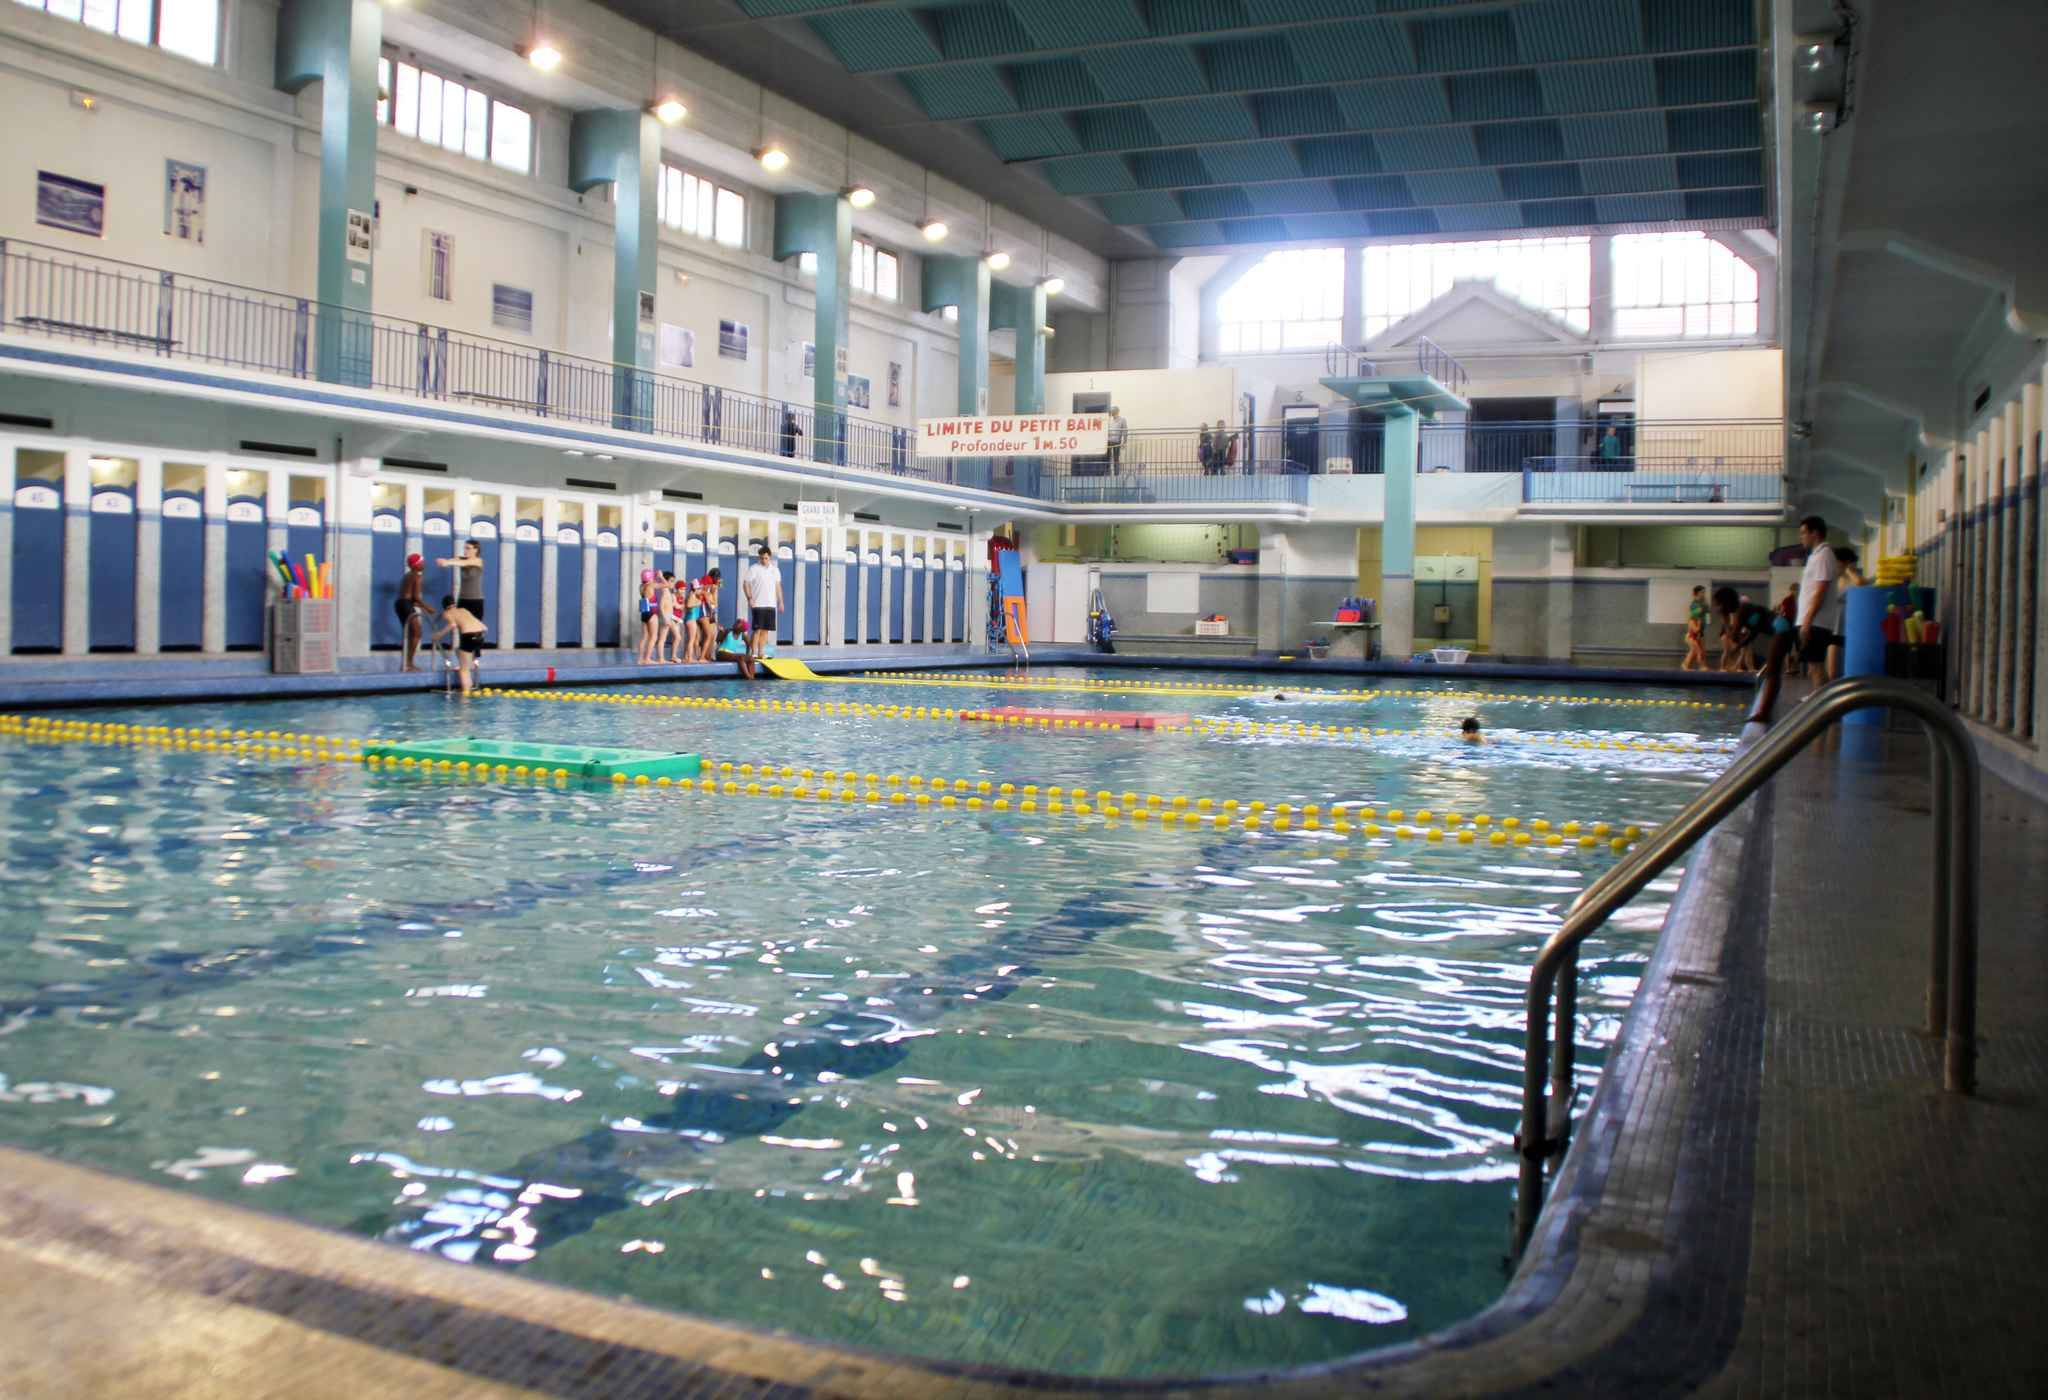 Rennes la piscine saint georges ne sera pas remplie de bi re for Piscine rennes